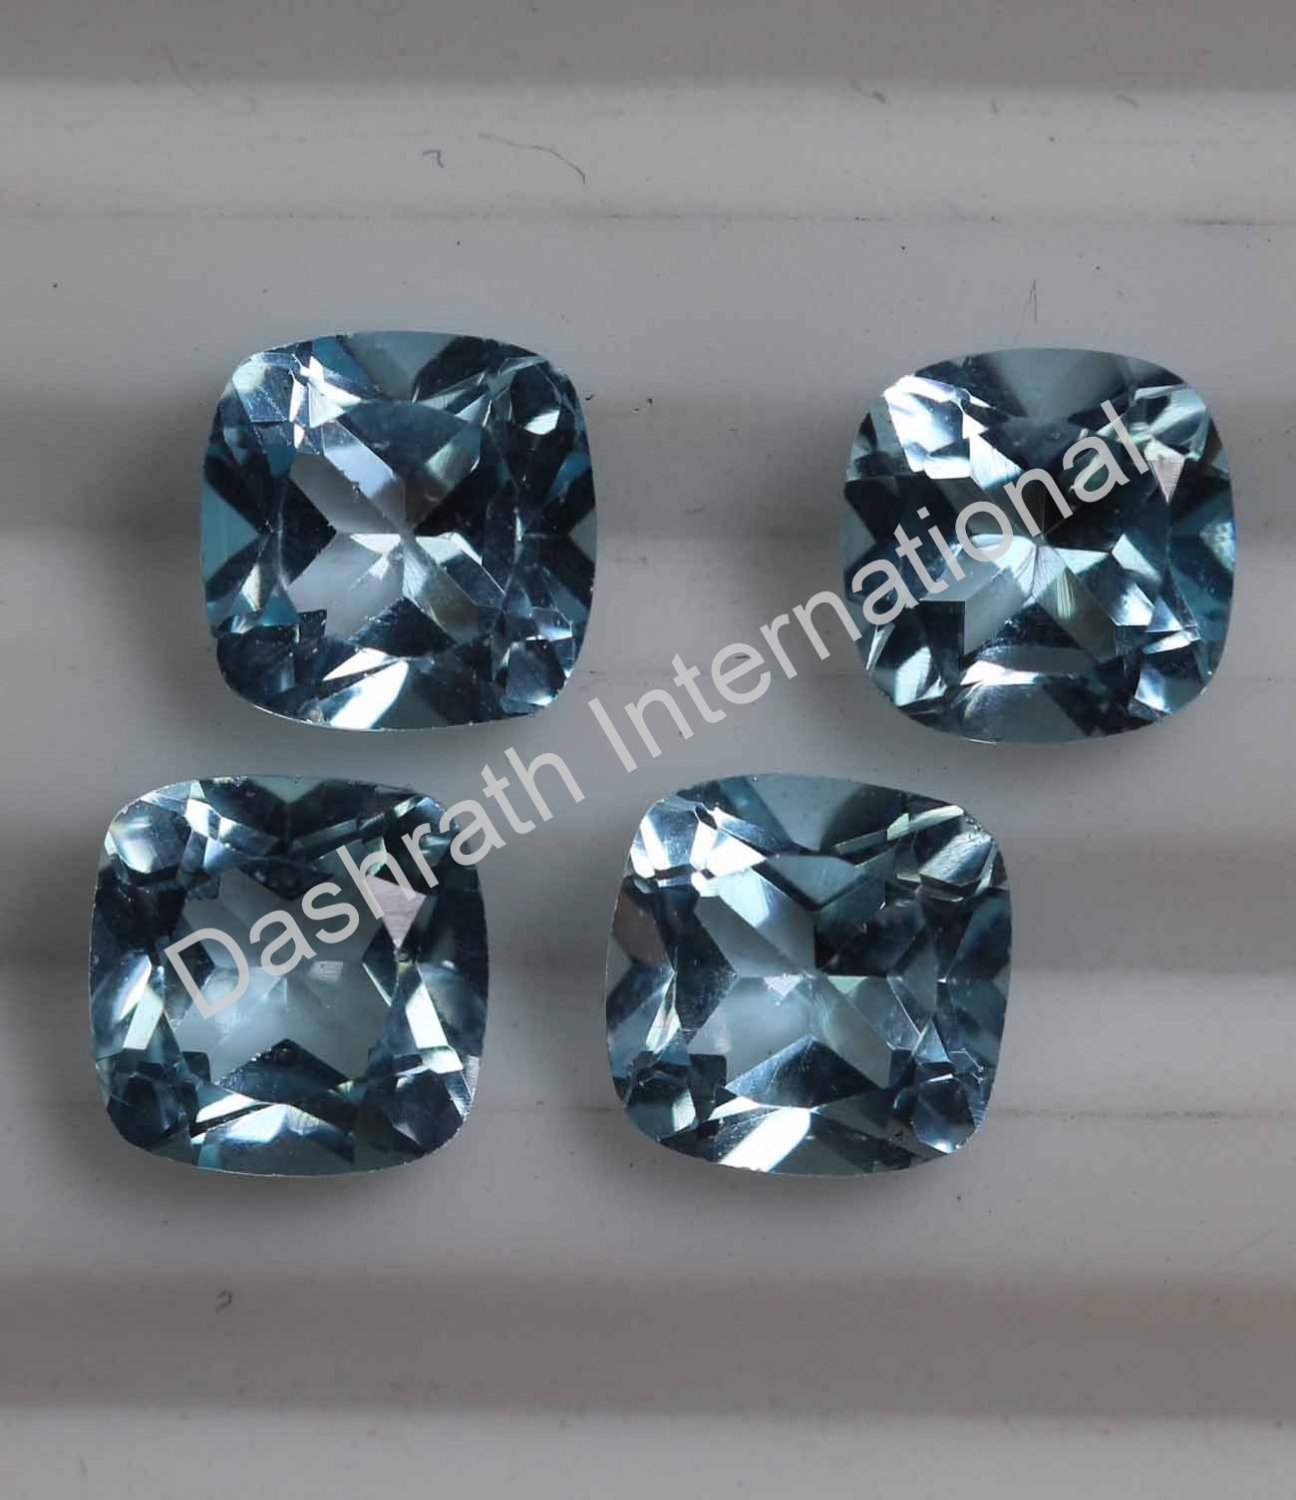 7mm Natural Sky Blue Topaz Faceted Cut Cushion 10 Pieces Lot Top Quality Loose Gemstone